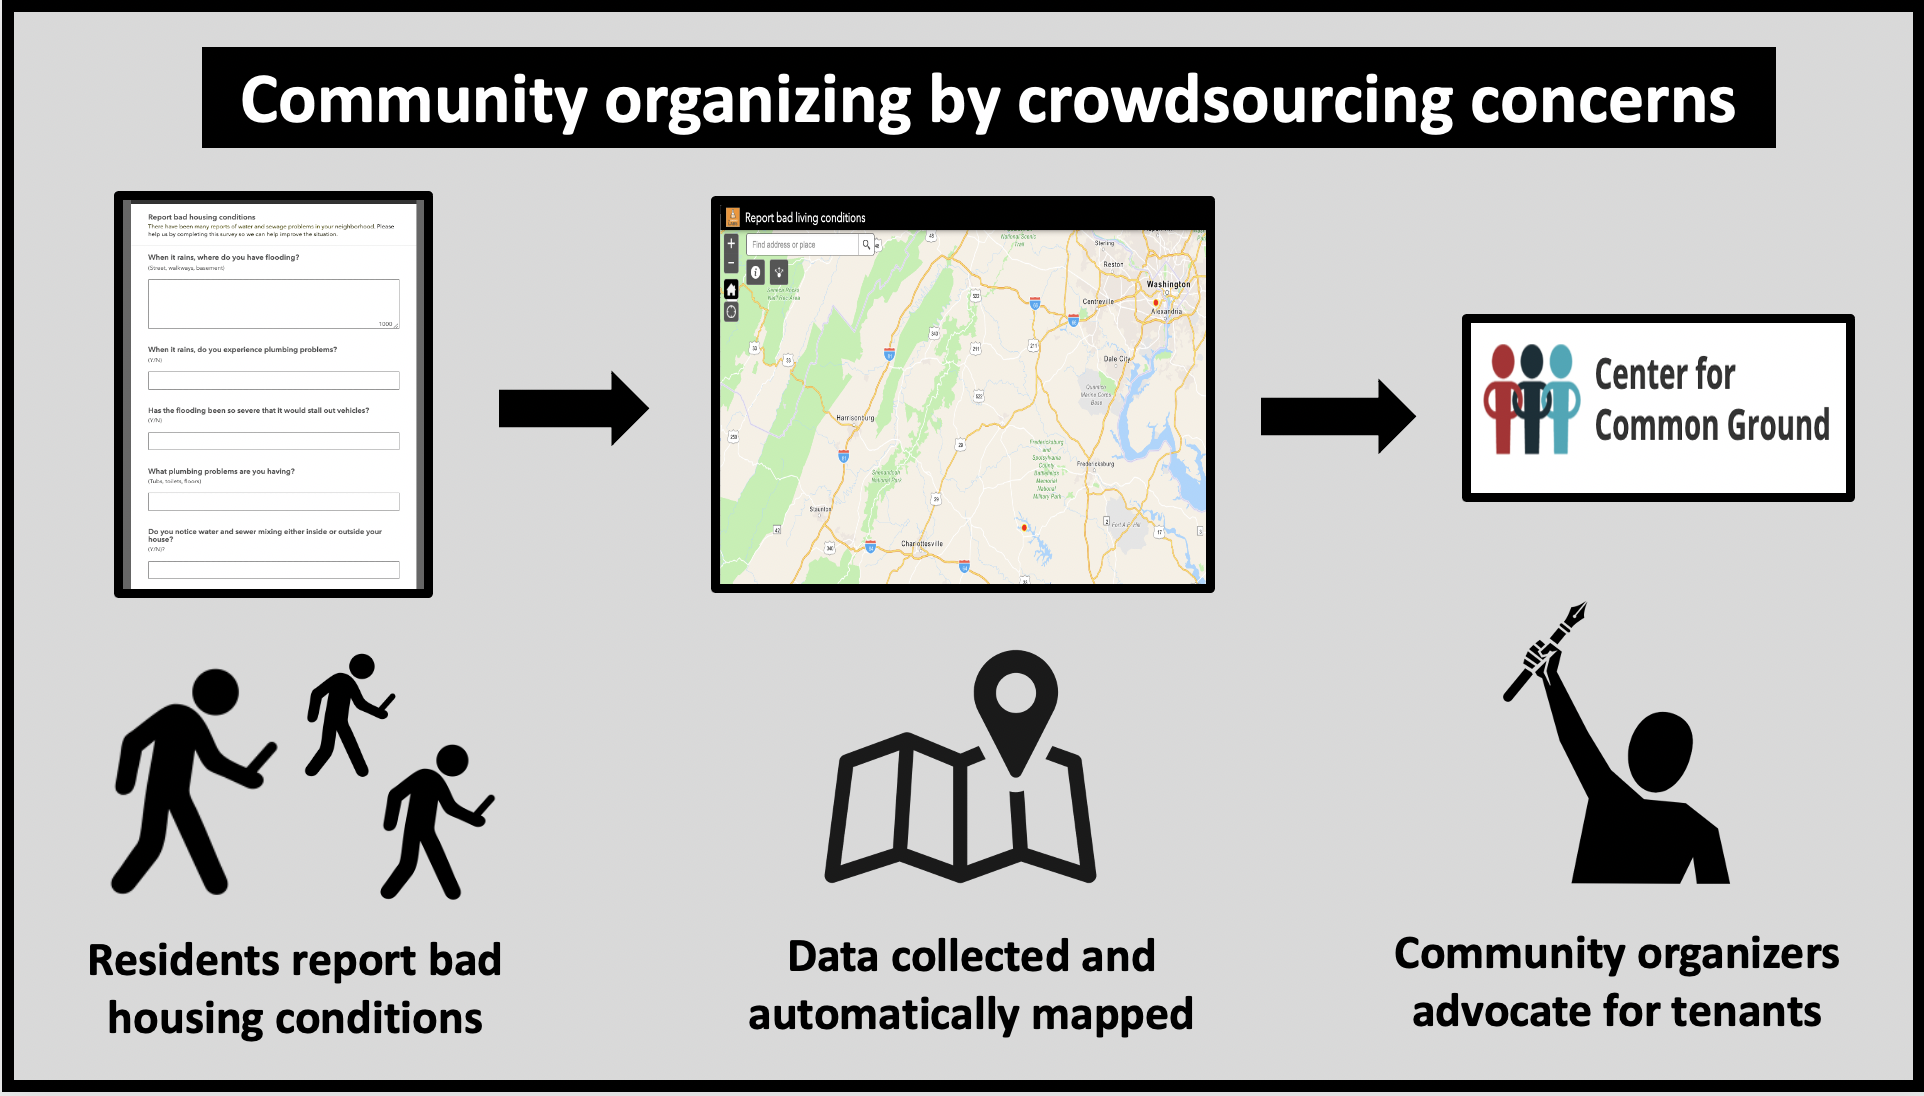 Crowdsourcing collects information from many people and makes it easy to analyze and display the results